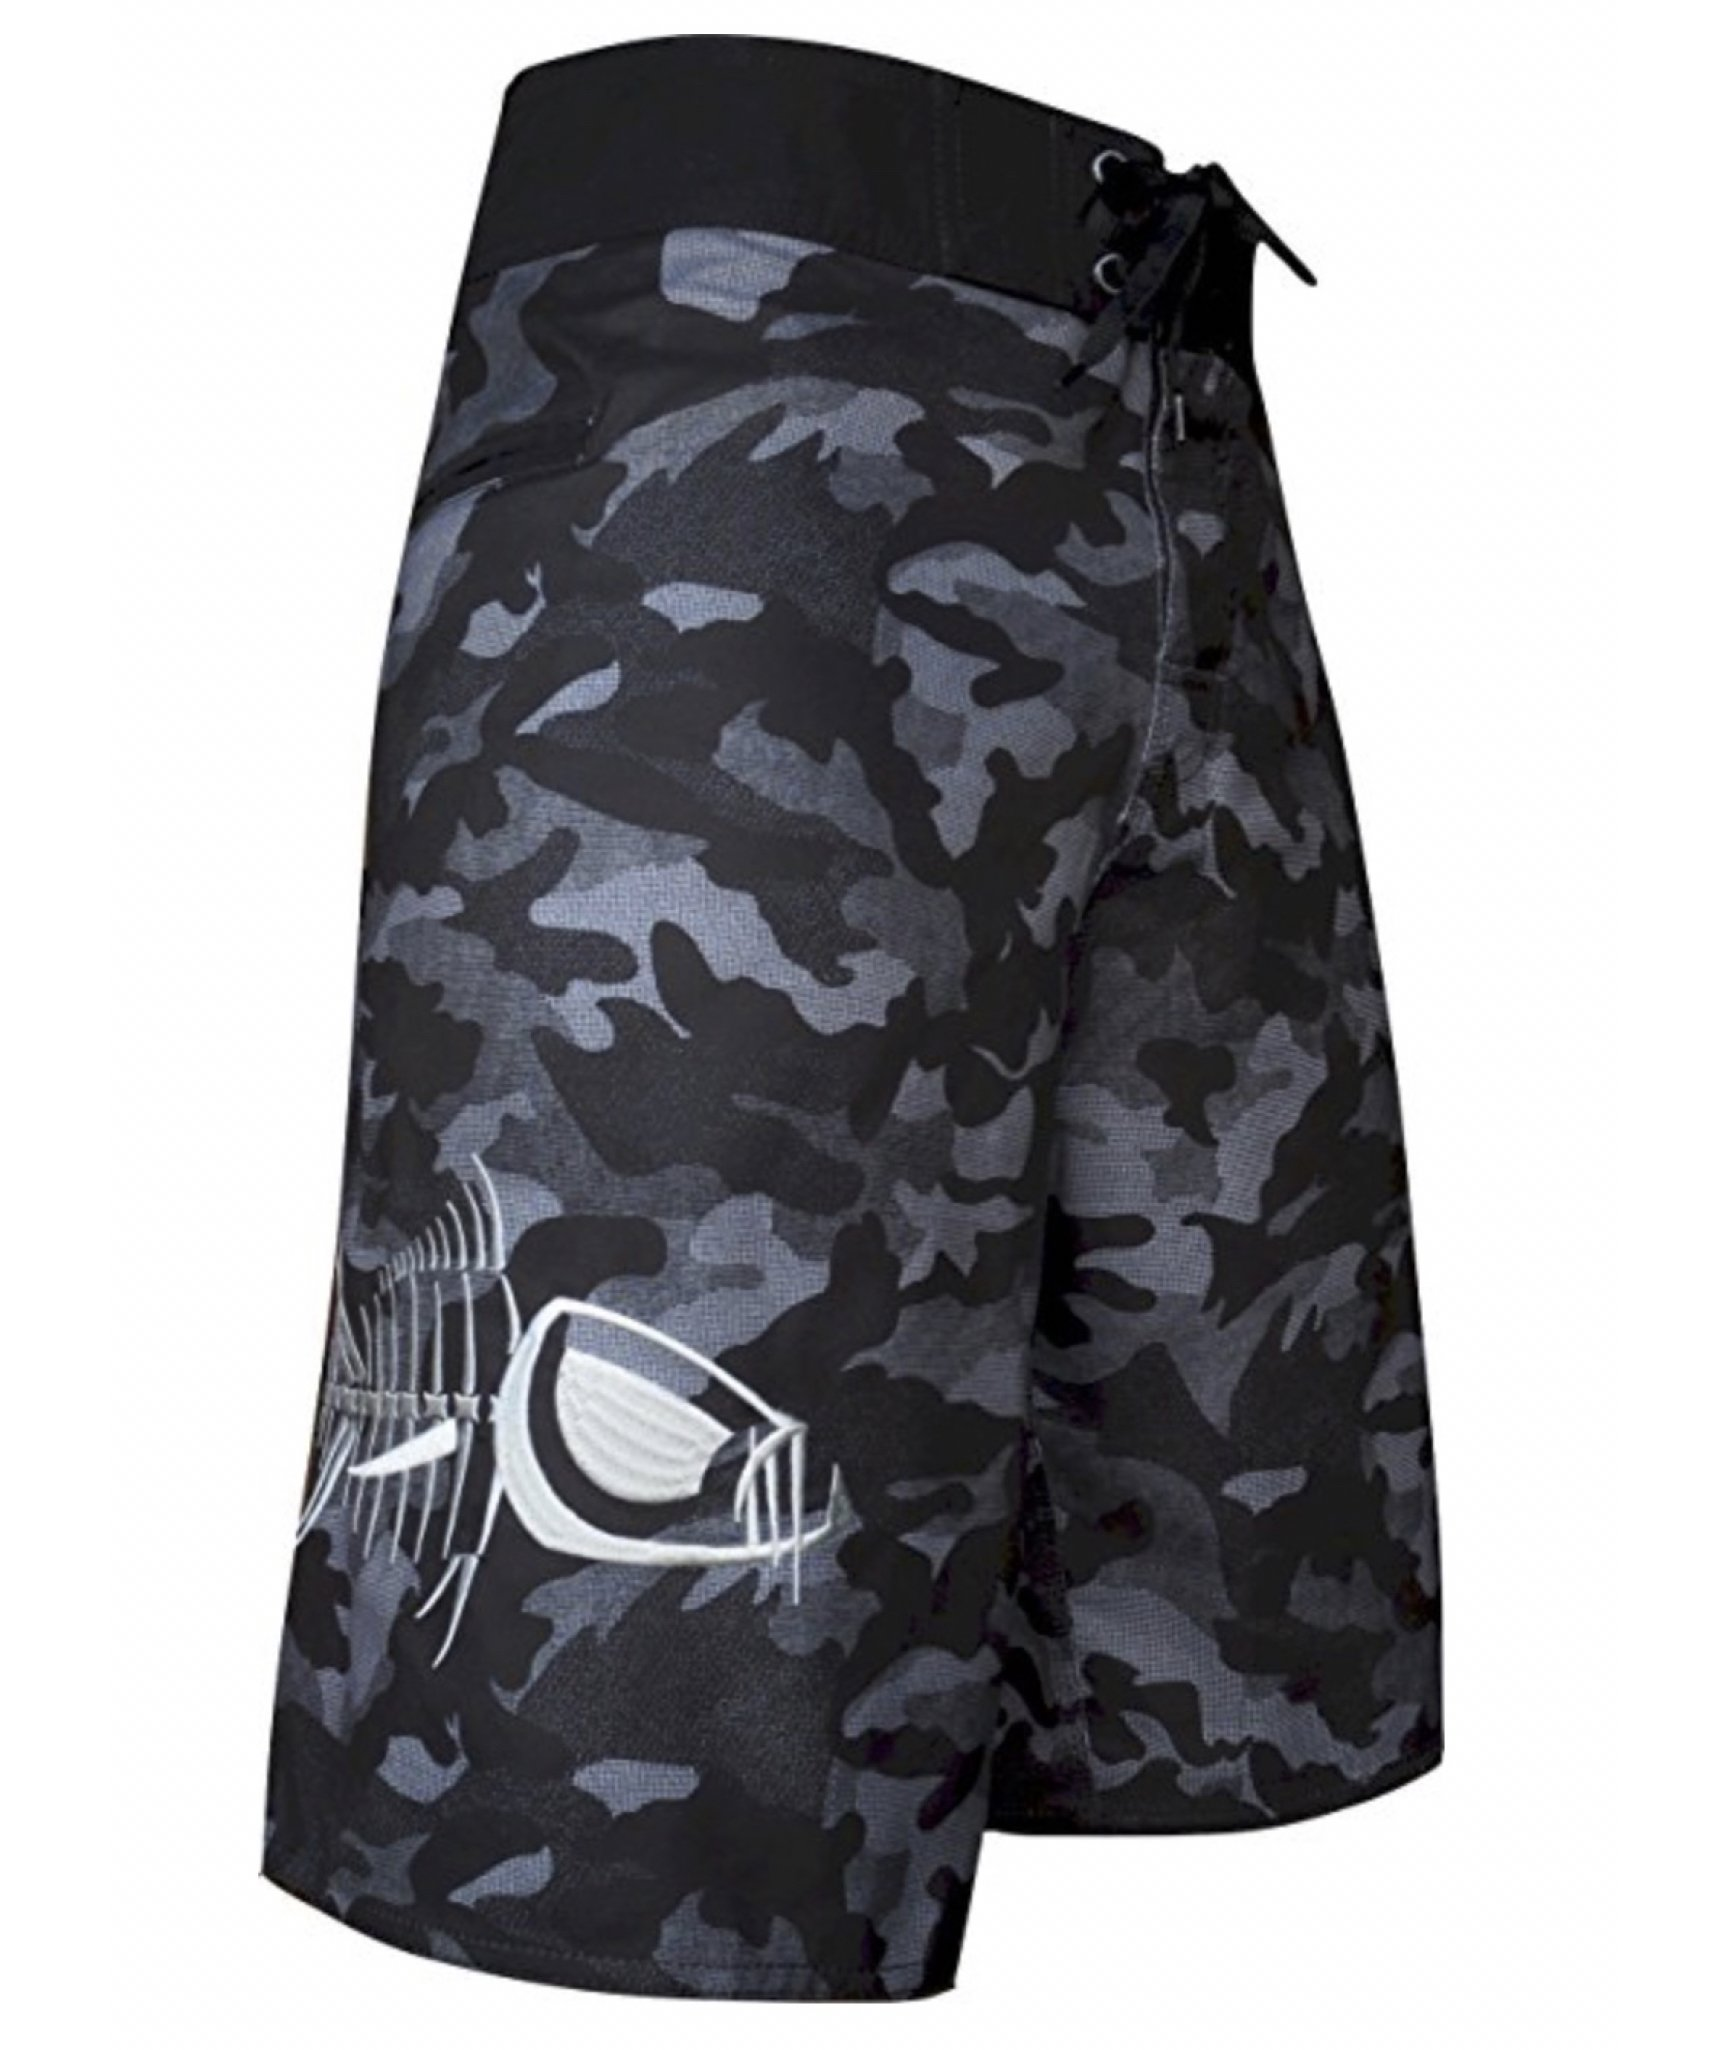 Tormenter Men's Tuna Waterman Stretch Boardshorts, Gray Camo, 34 by Tormenter